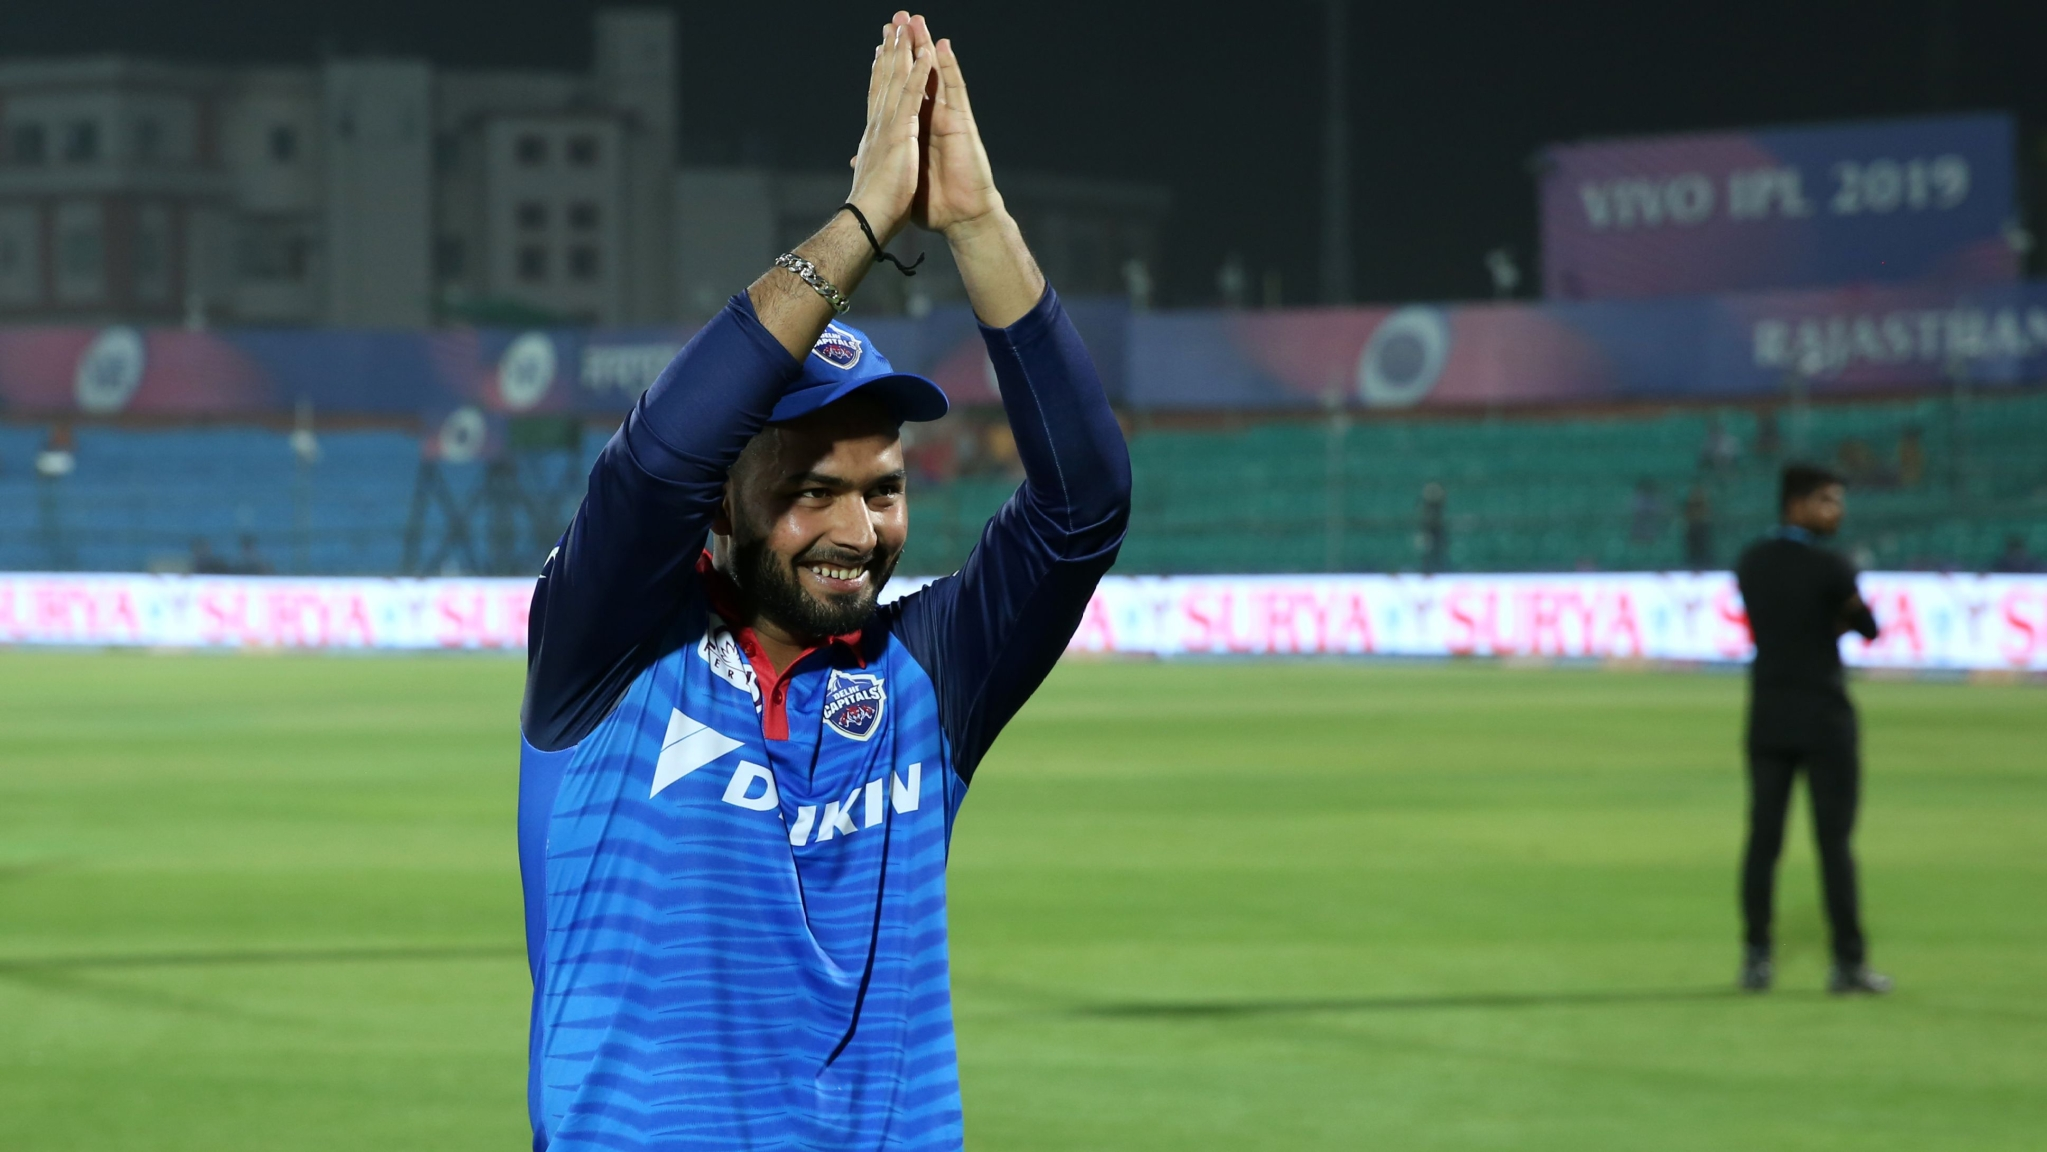 And Pant Isn't in the WC Squad: Twitter After Pant's Heroics vs RR